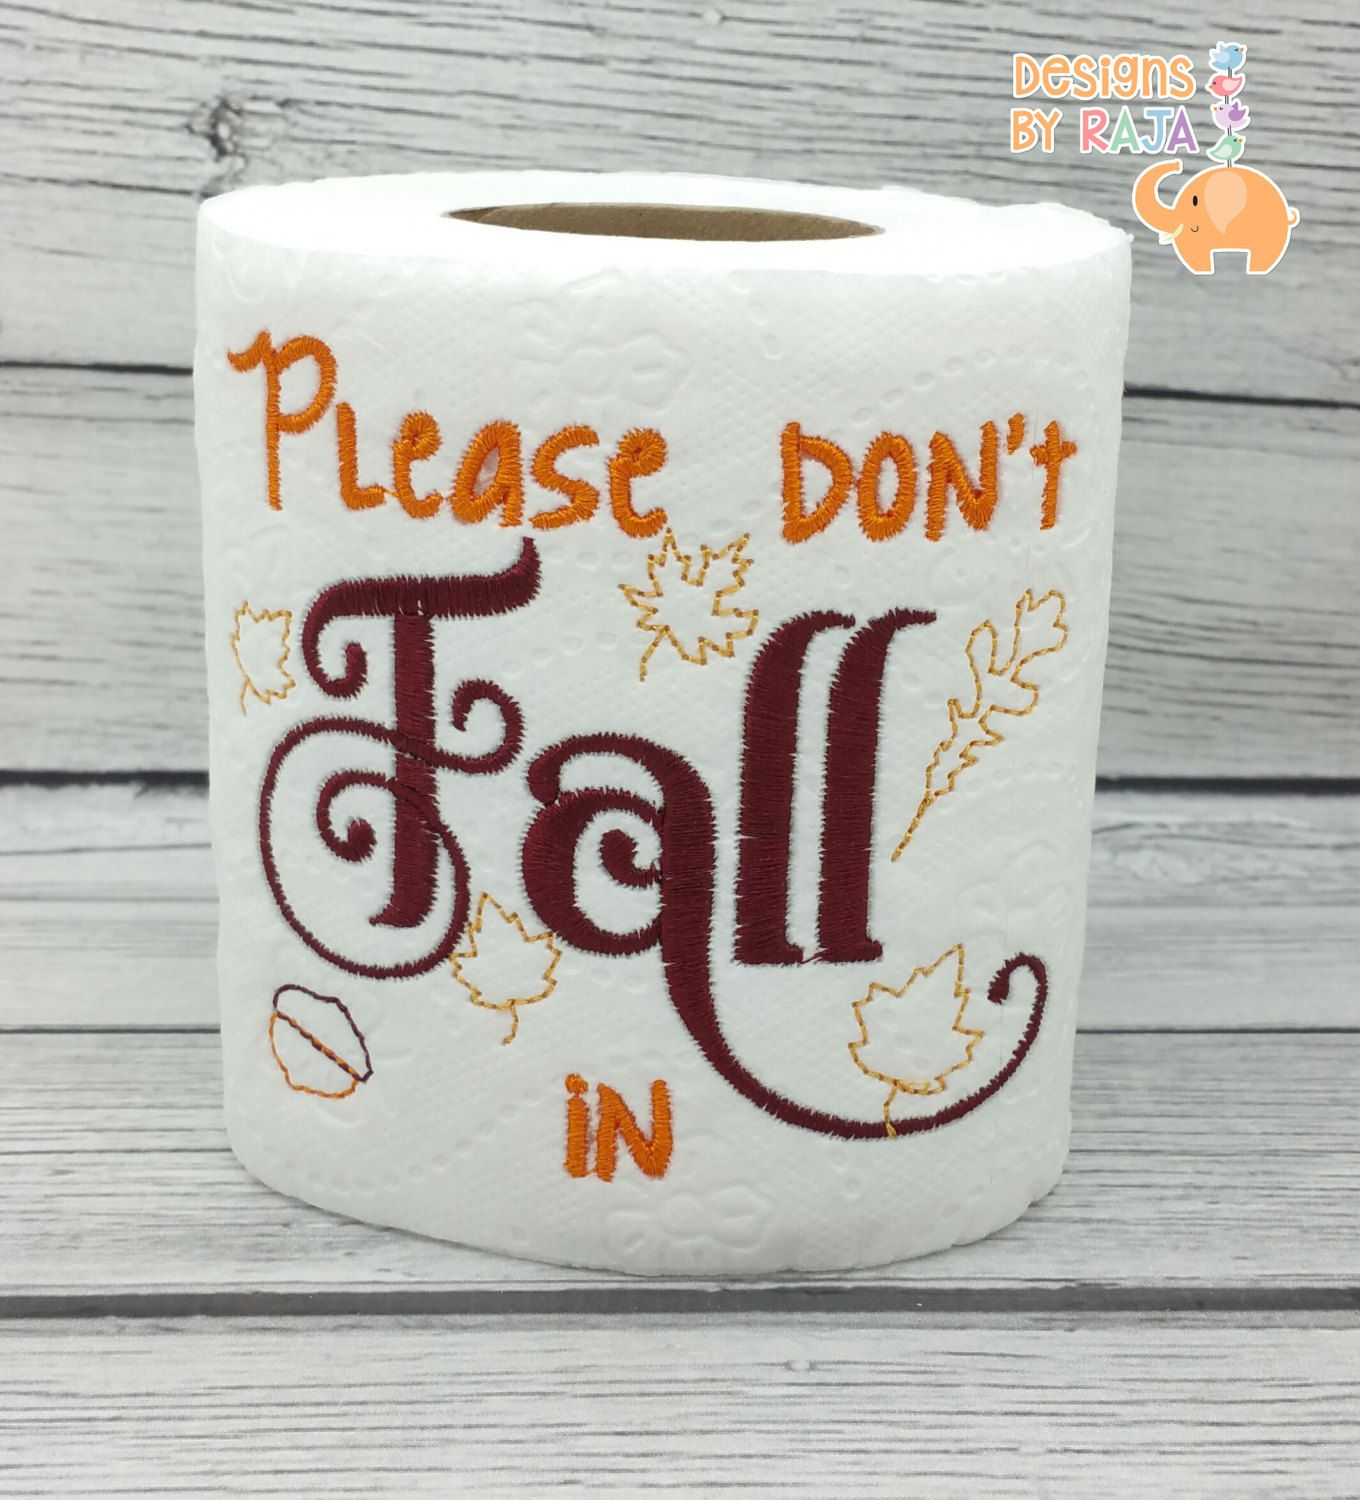 Embroidery designs for toilet paper - Please Dont Fall In Embroidered Toilet Paper Thanksgiving Decor Host Hostess Gift Funny